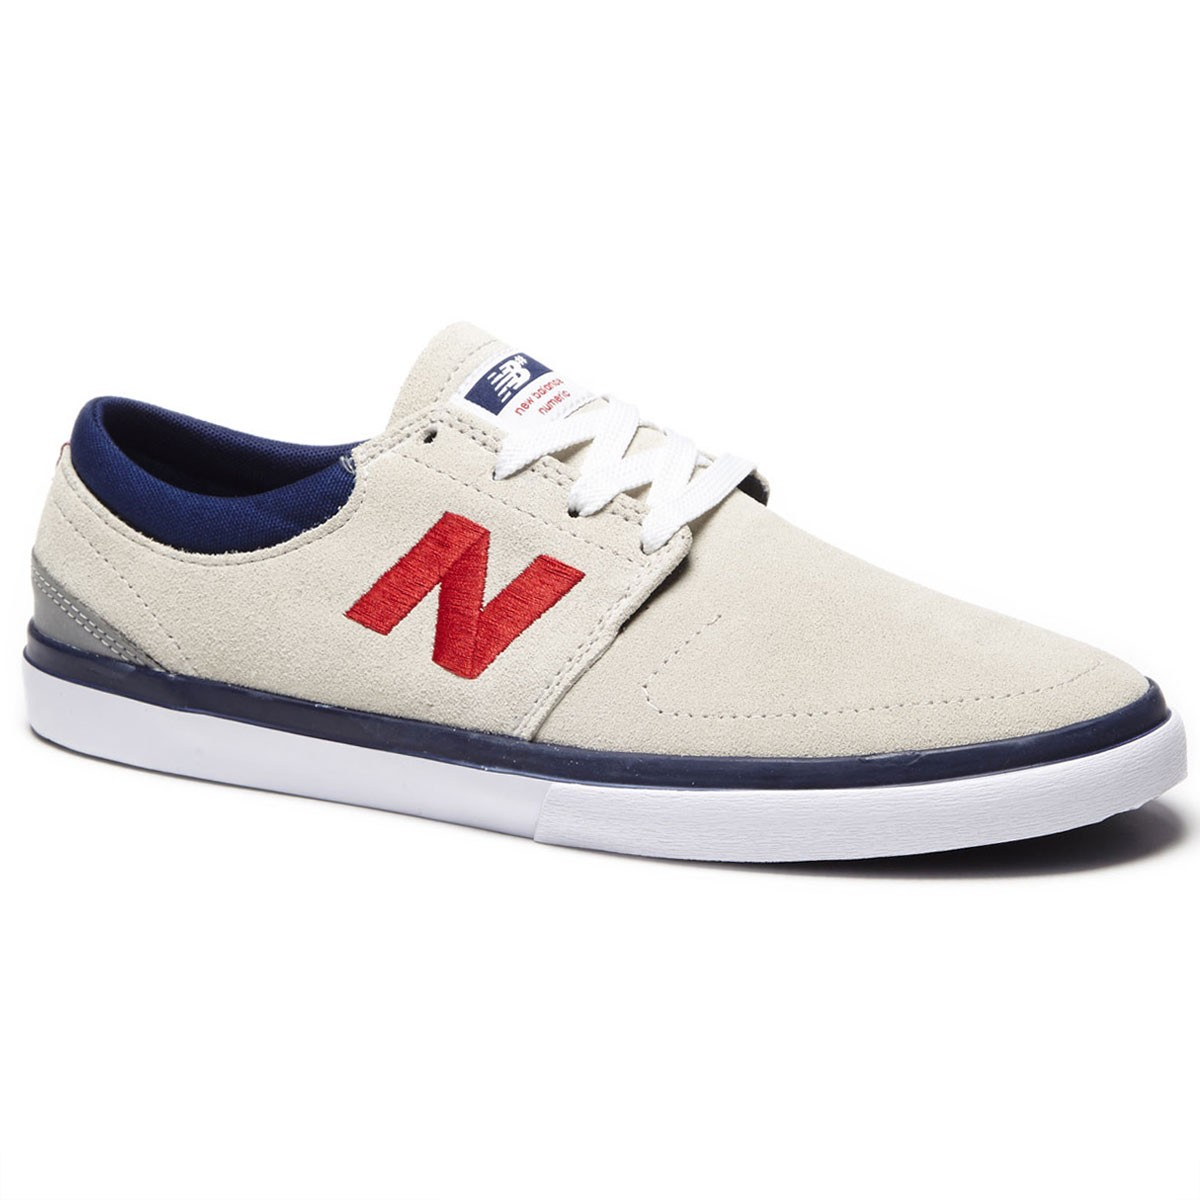 New Balance Brighton 344 Shoes - White/Blue - 8.0